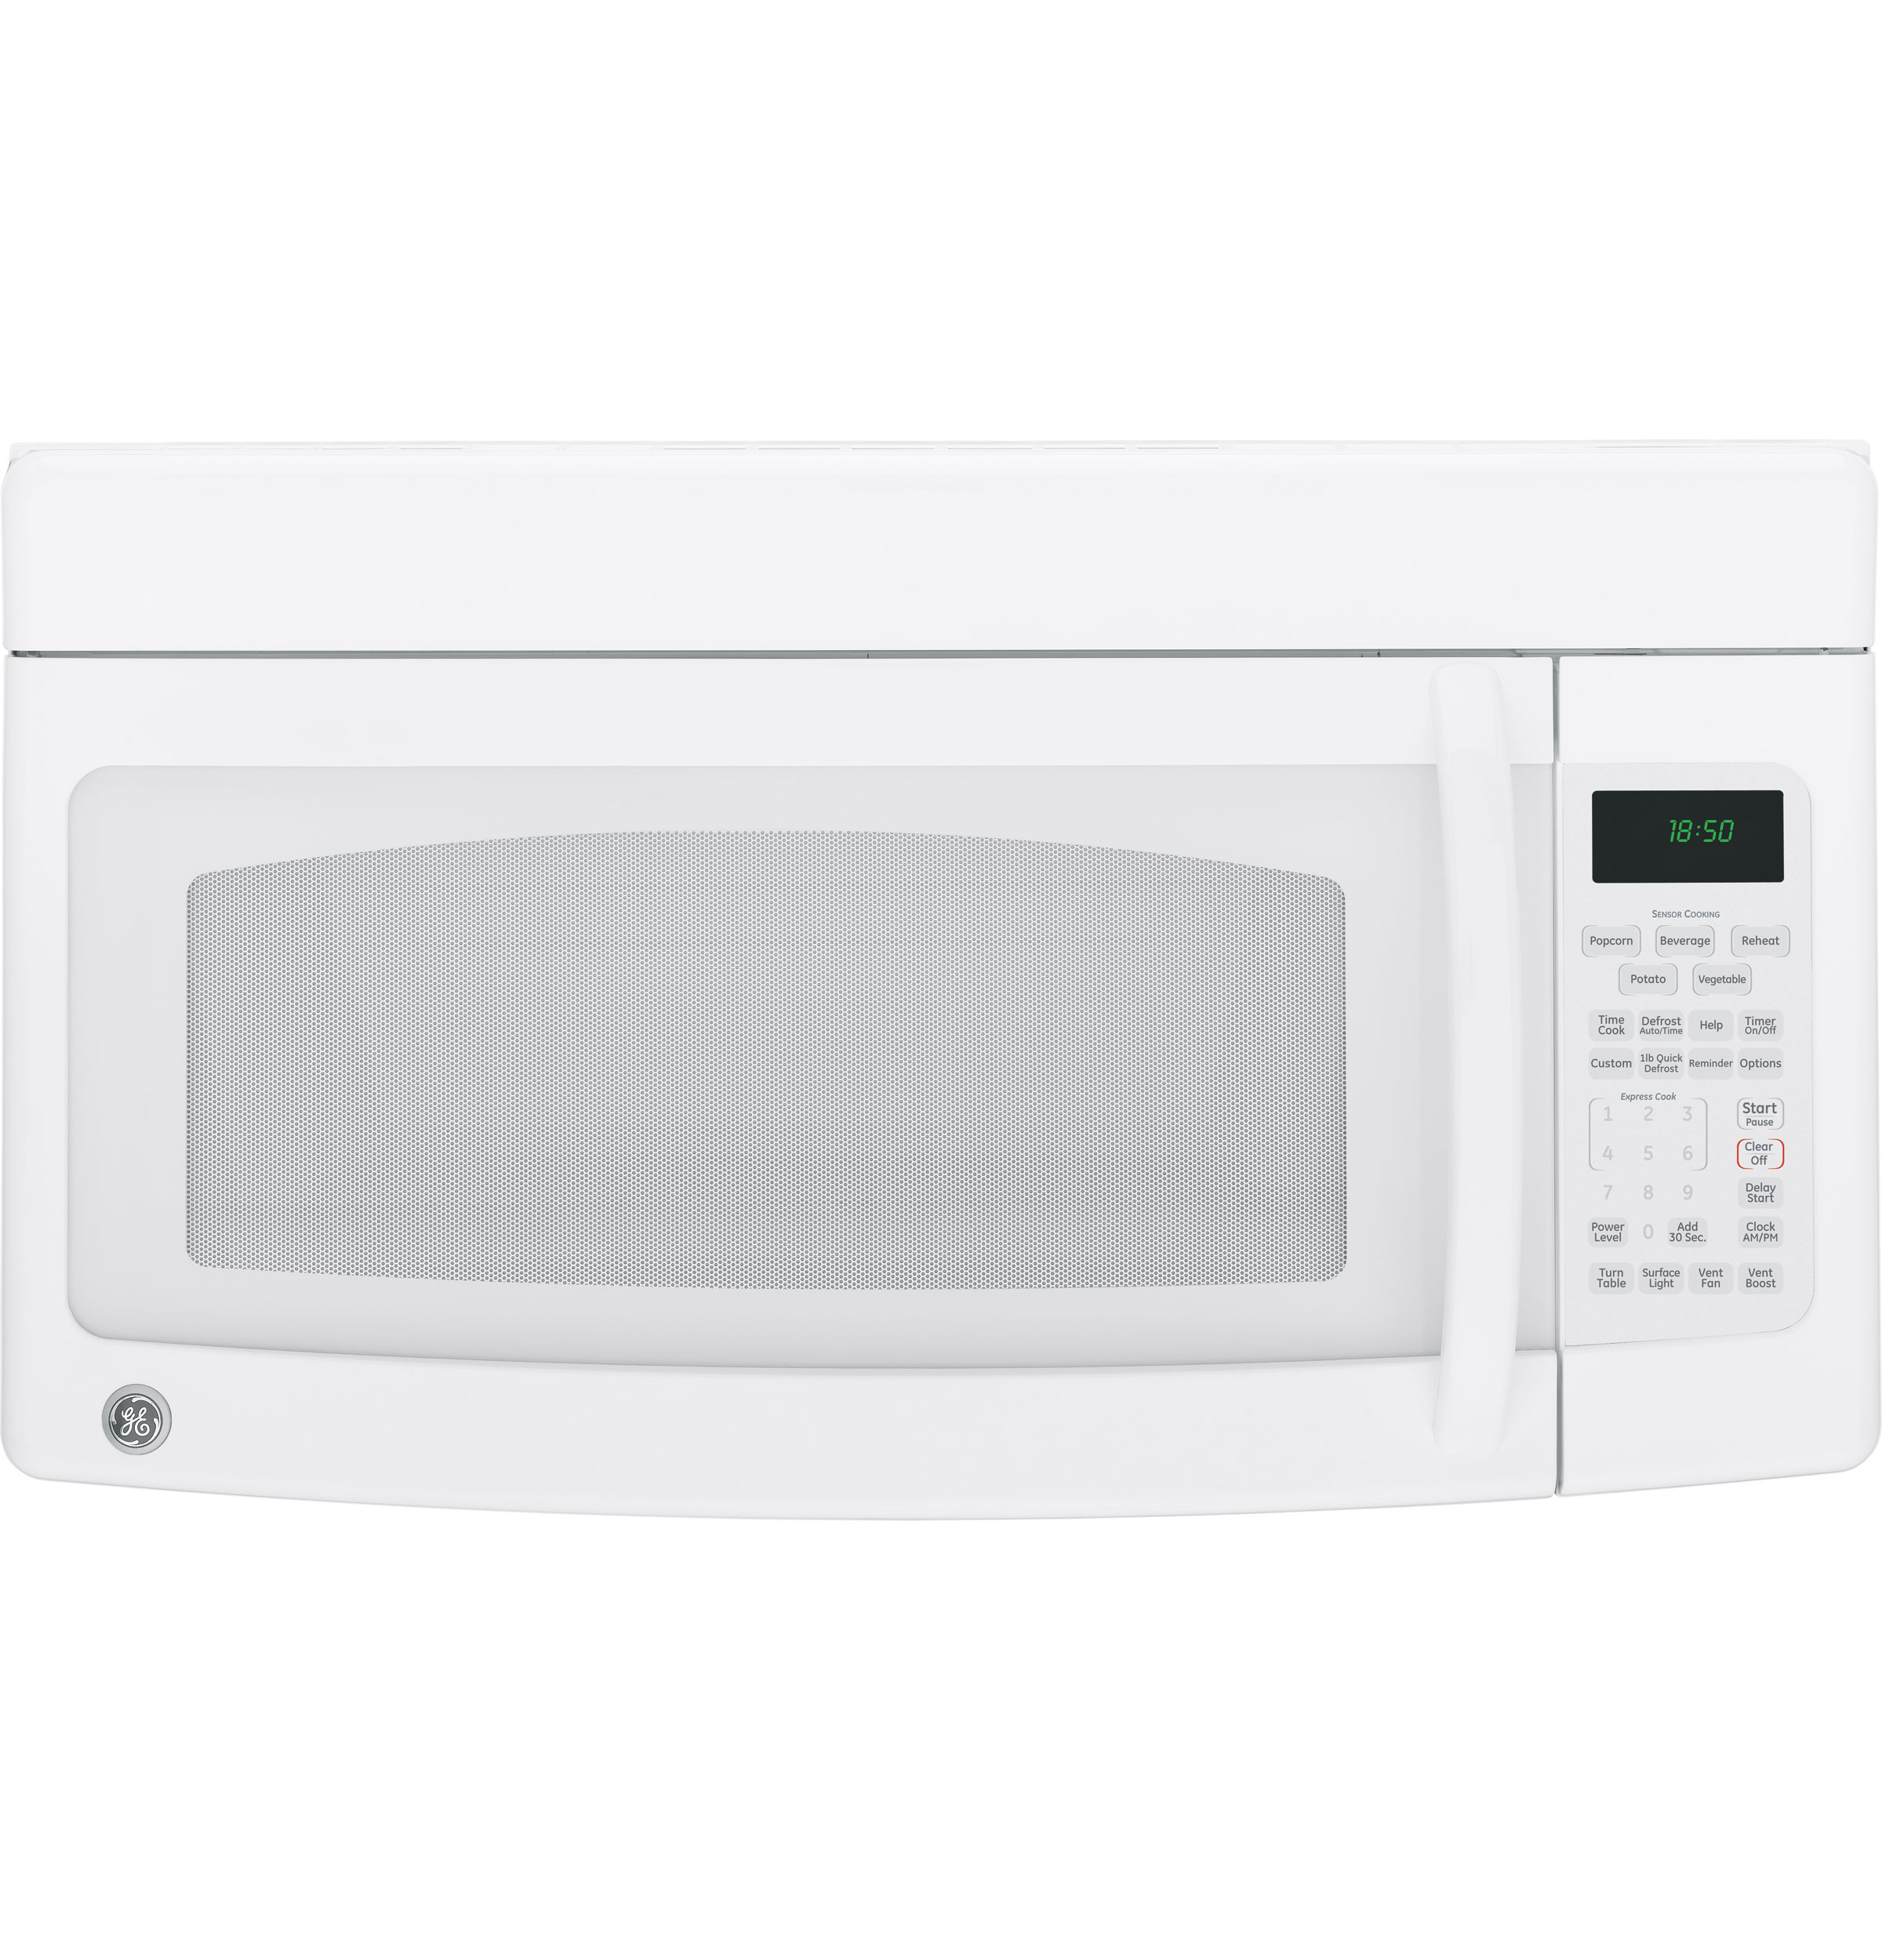 Ge Spacemaker 174 Over The Range Microwave Oven Jvm1850dmww